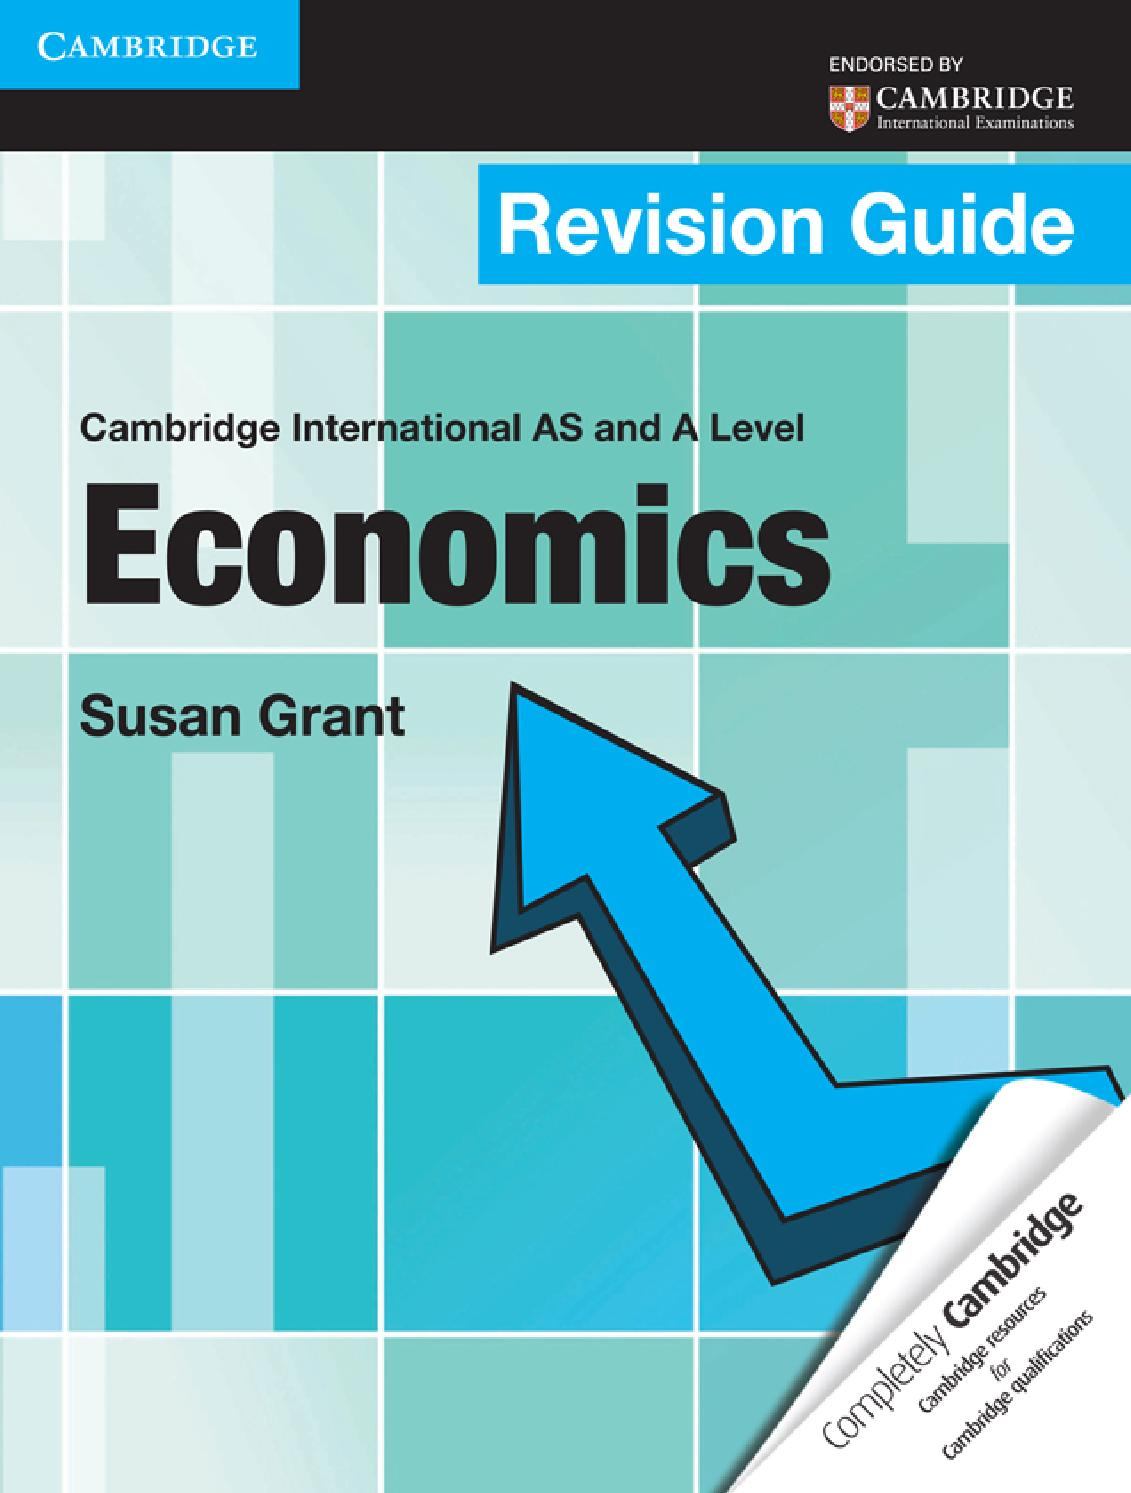 Anforme revision guide to a2 level economics and business.